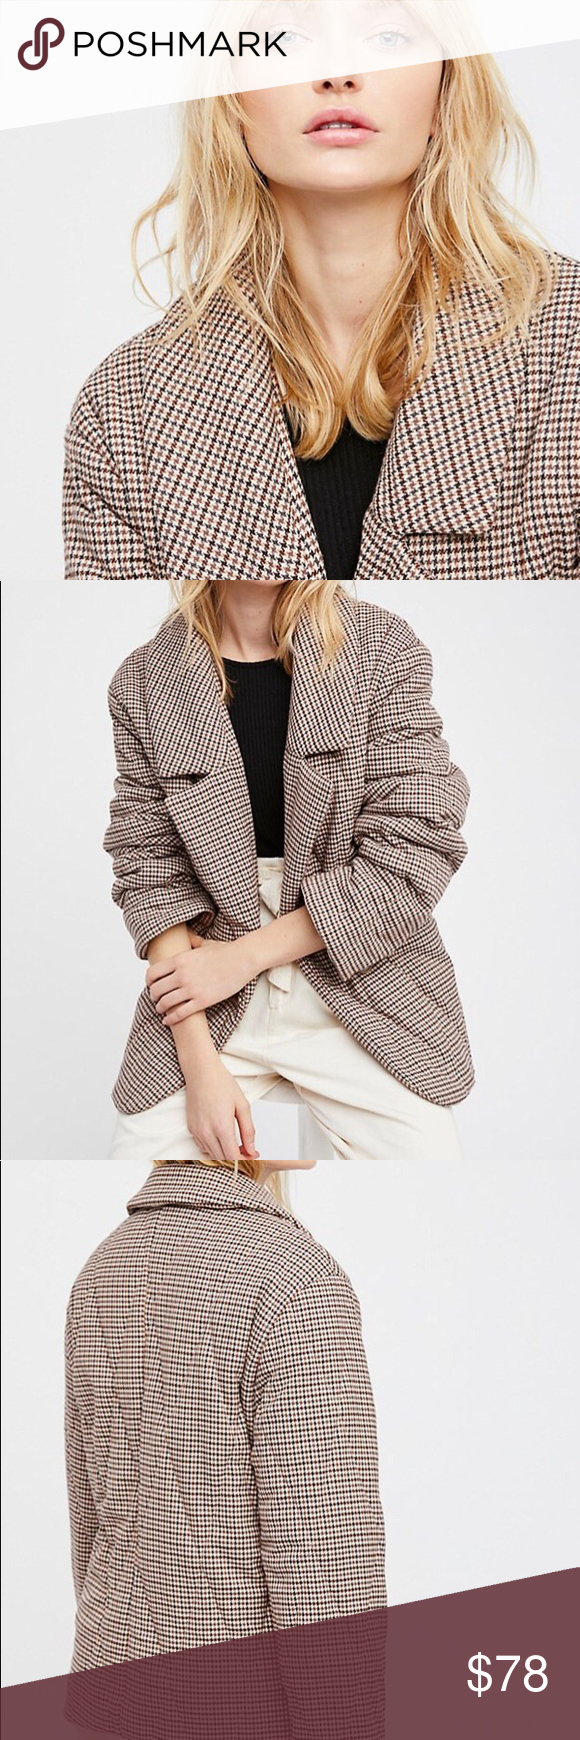 Menswear Pillow Jacket✨ menswear-inspired jacket features an ultra warm design with a puffed pillow shape.  • Simple button closure • Pockets • Lined  *65% Polyester *33% Rayon *2% Spandex *Dry Clean.  New w tags Free People Jackets & Coats Puffers